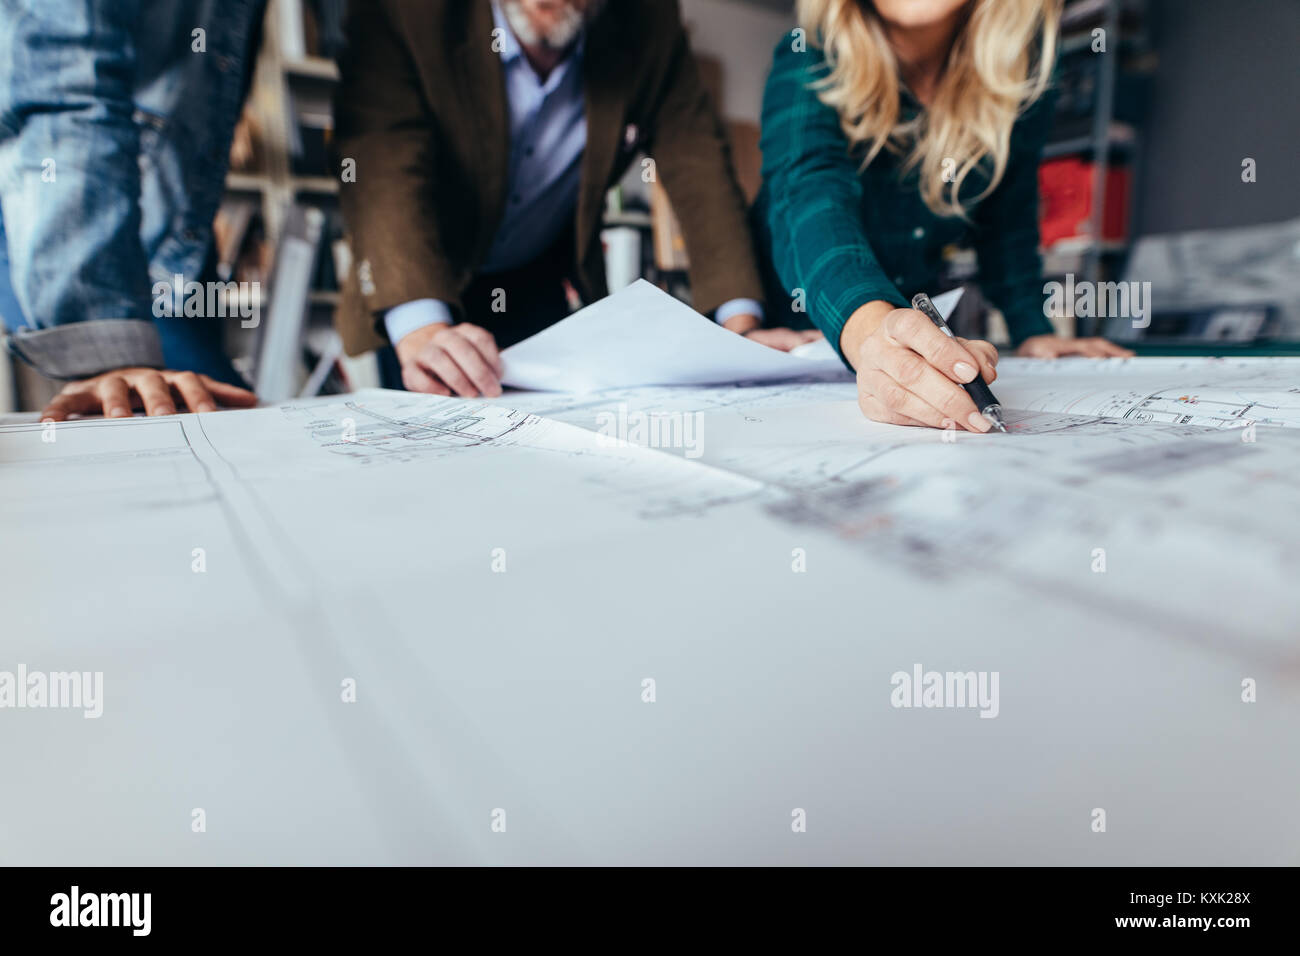 Creative business people working together on real estate projects. Close up of female hand pointing at building - Stock Image